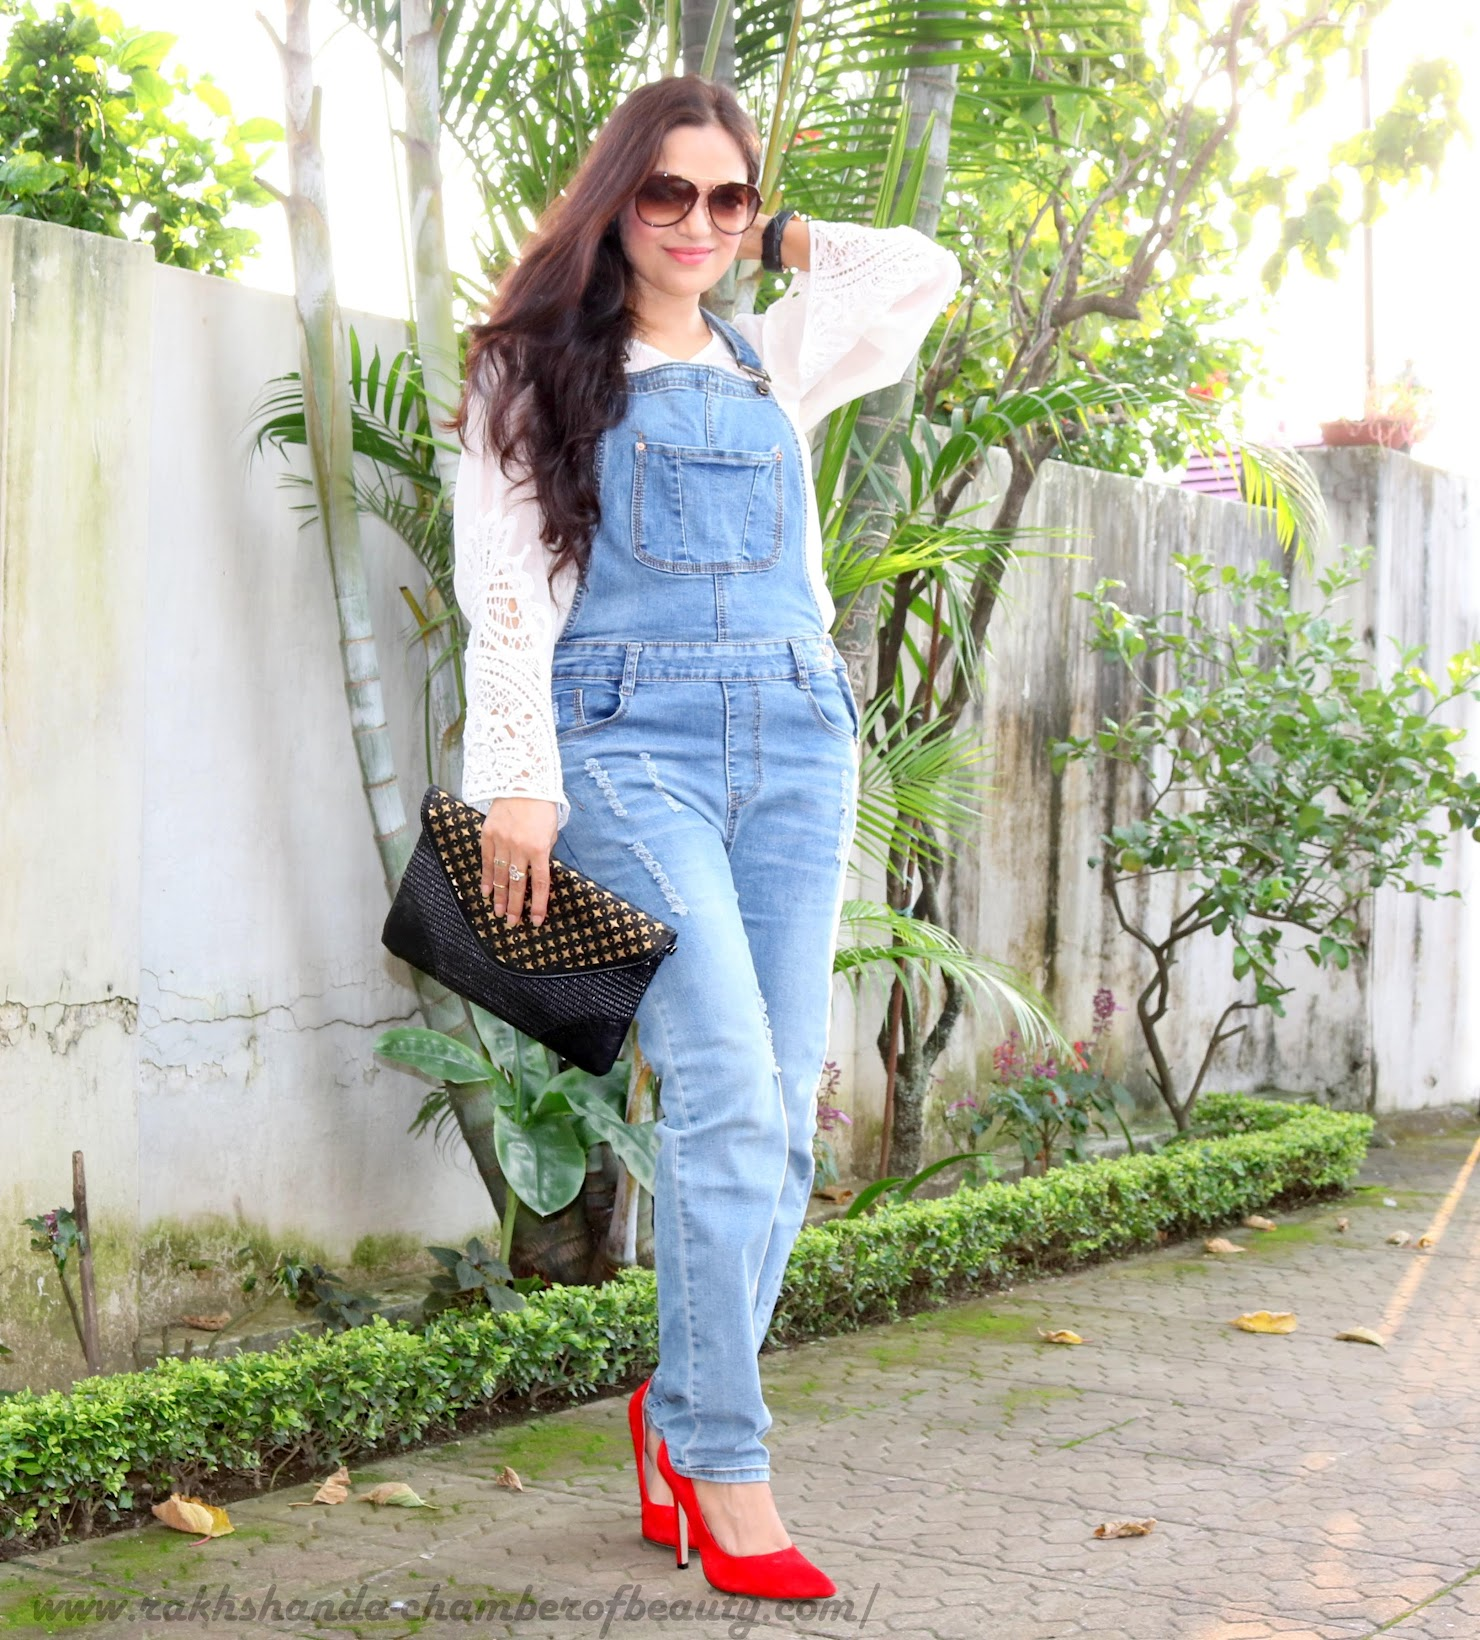 Inspired from the 70s- OOTD | How to style Dungarees, Dungarees from Stylemoi, lovelywholesale red heels, Retro fashion, fashion trends 2015, OOTD, Indian fashion blogger, Chamber of Beauty